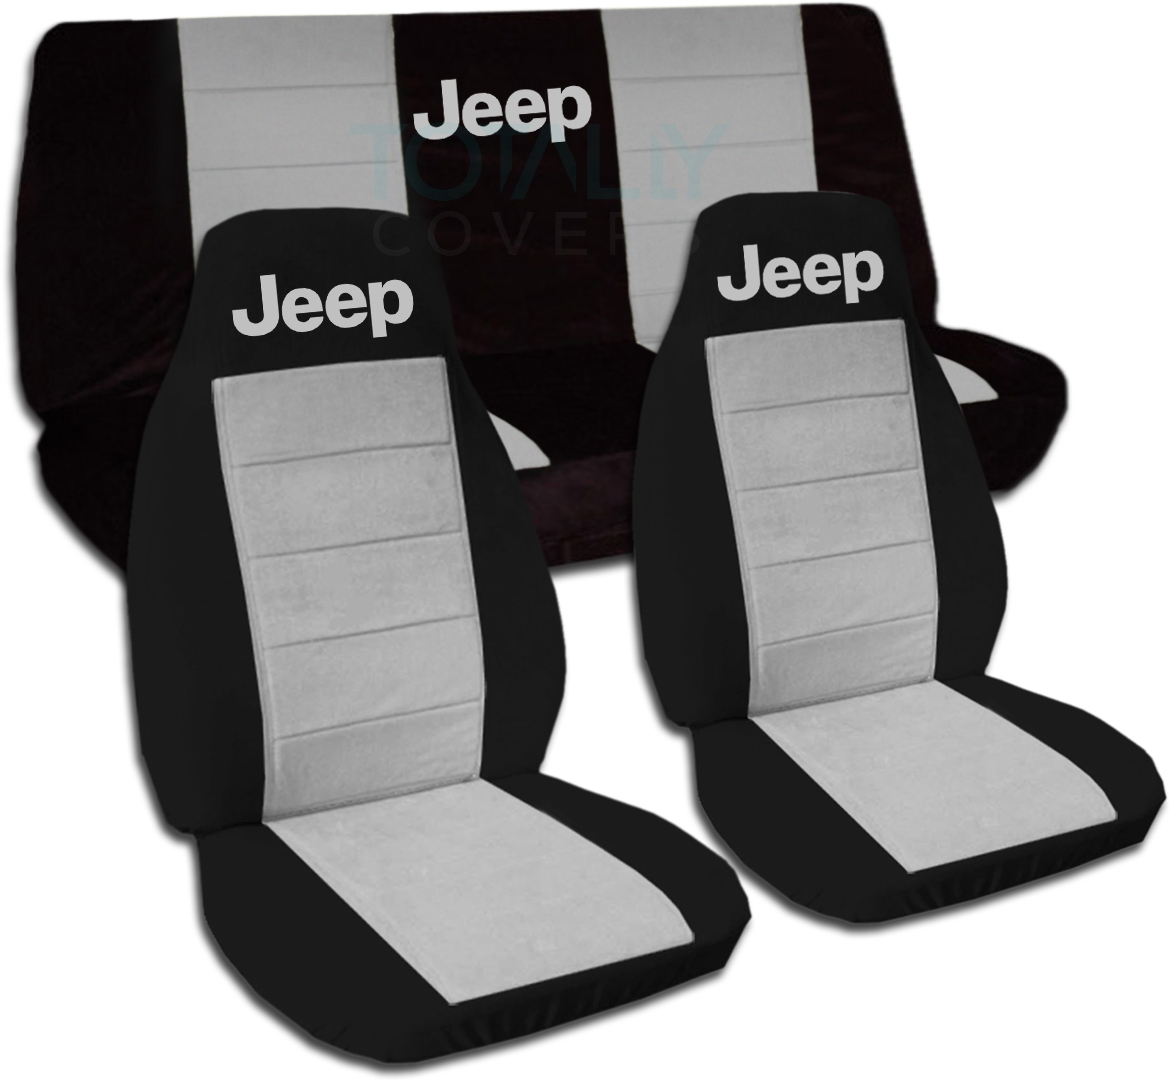 Jeep Wrangler Yj Tj Jk 1987 2018 Two Tone Seat Covers W